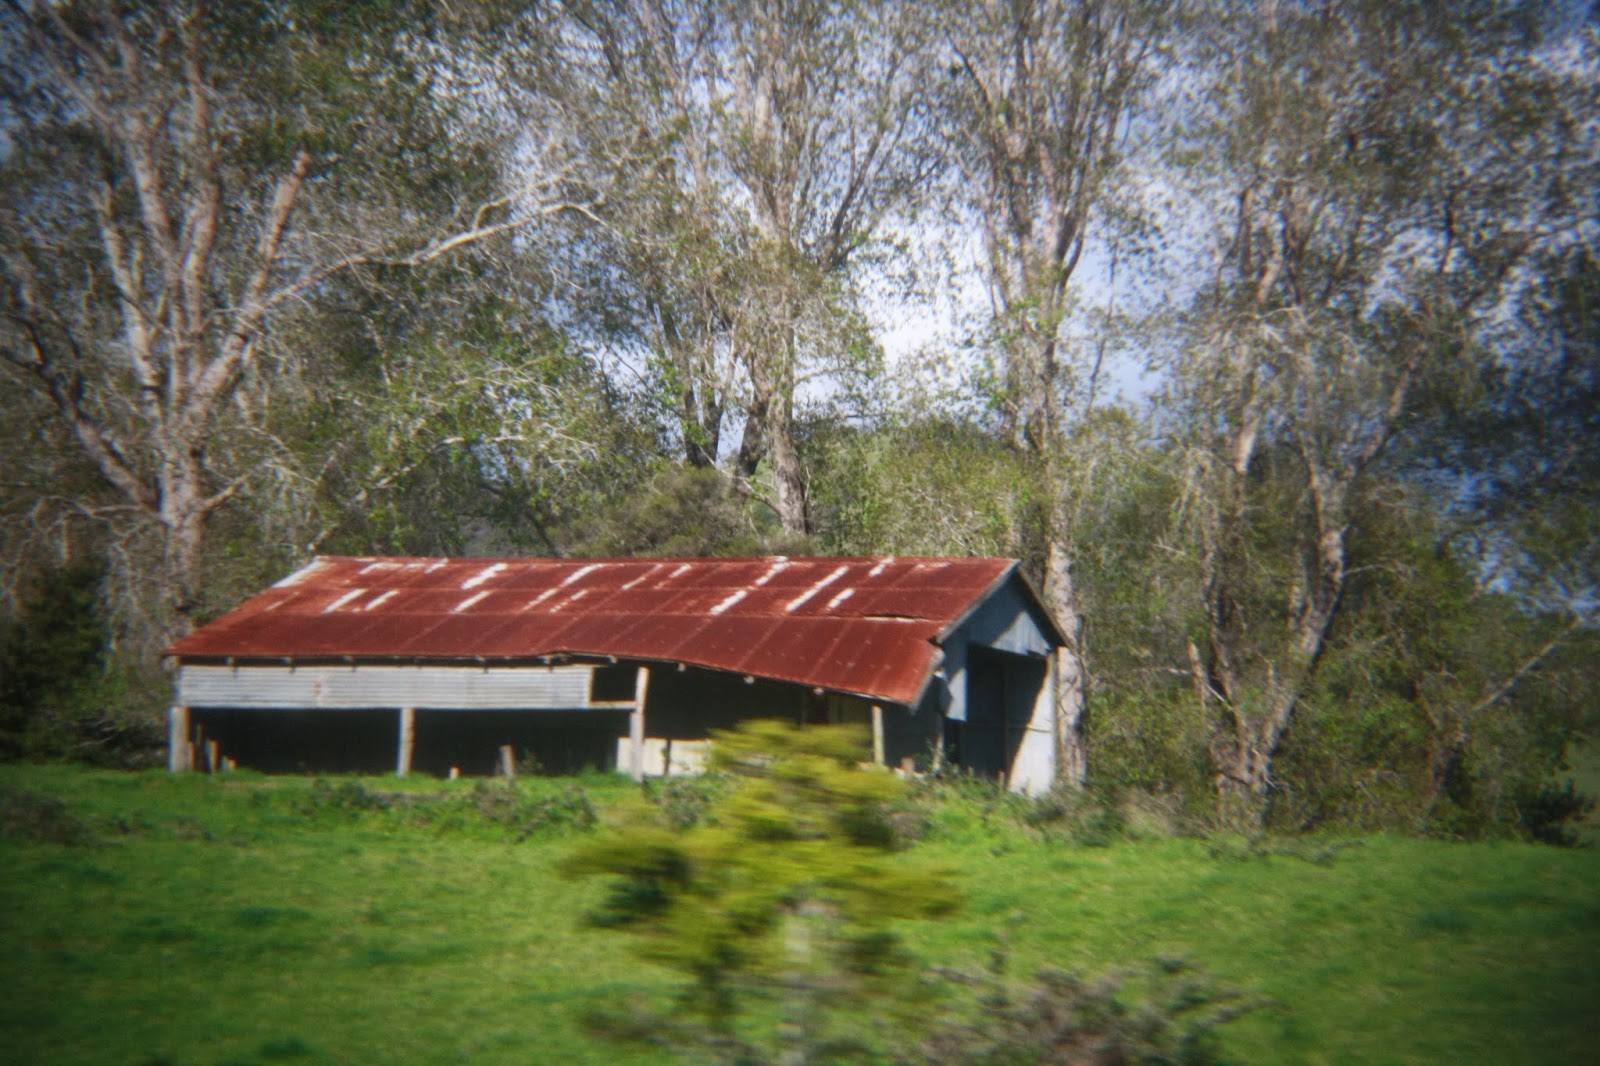 Abandoned shed in Northland, New Zealand. One corner of the roof is caving in.